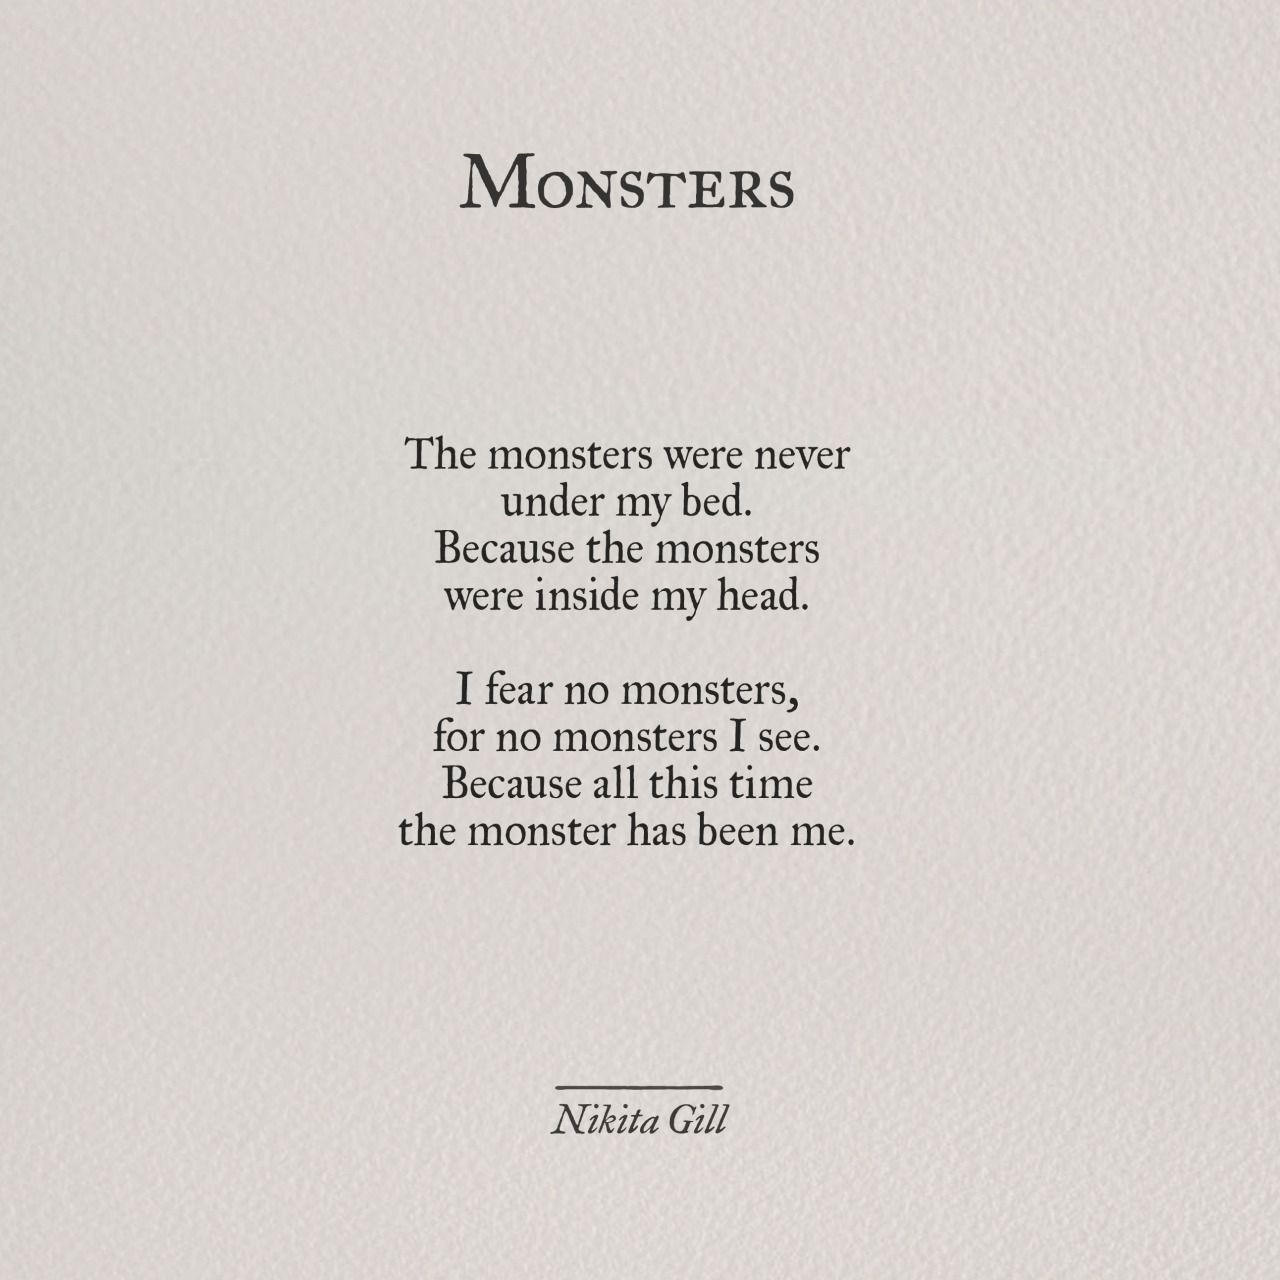 Image result for nikita gill monster